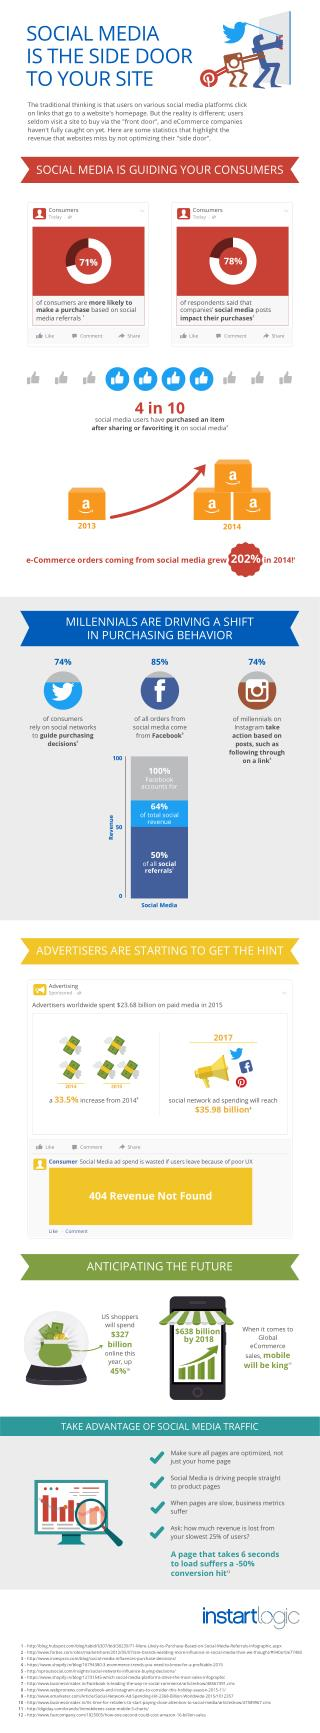 Infographic: Social Media Is The Side Door To Your Site